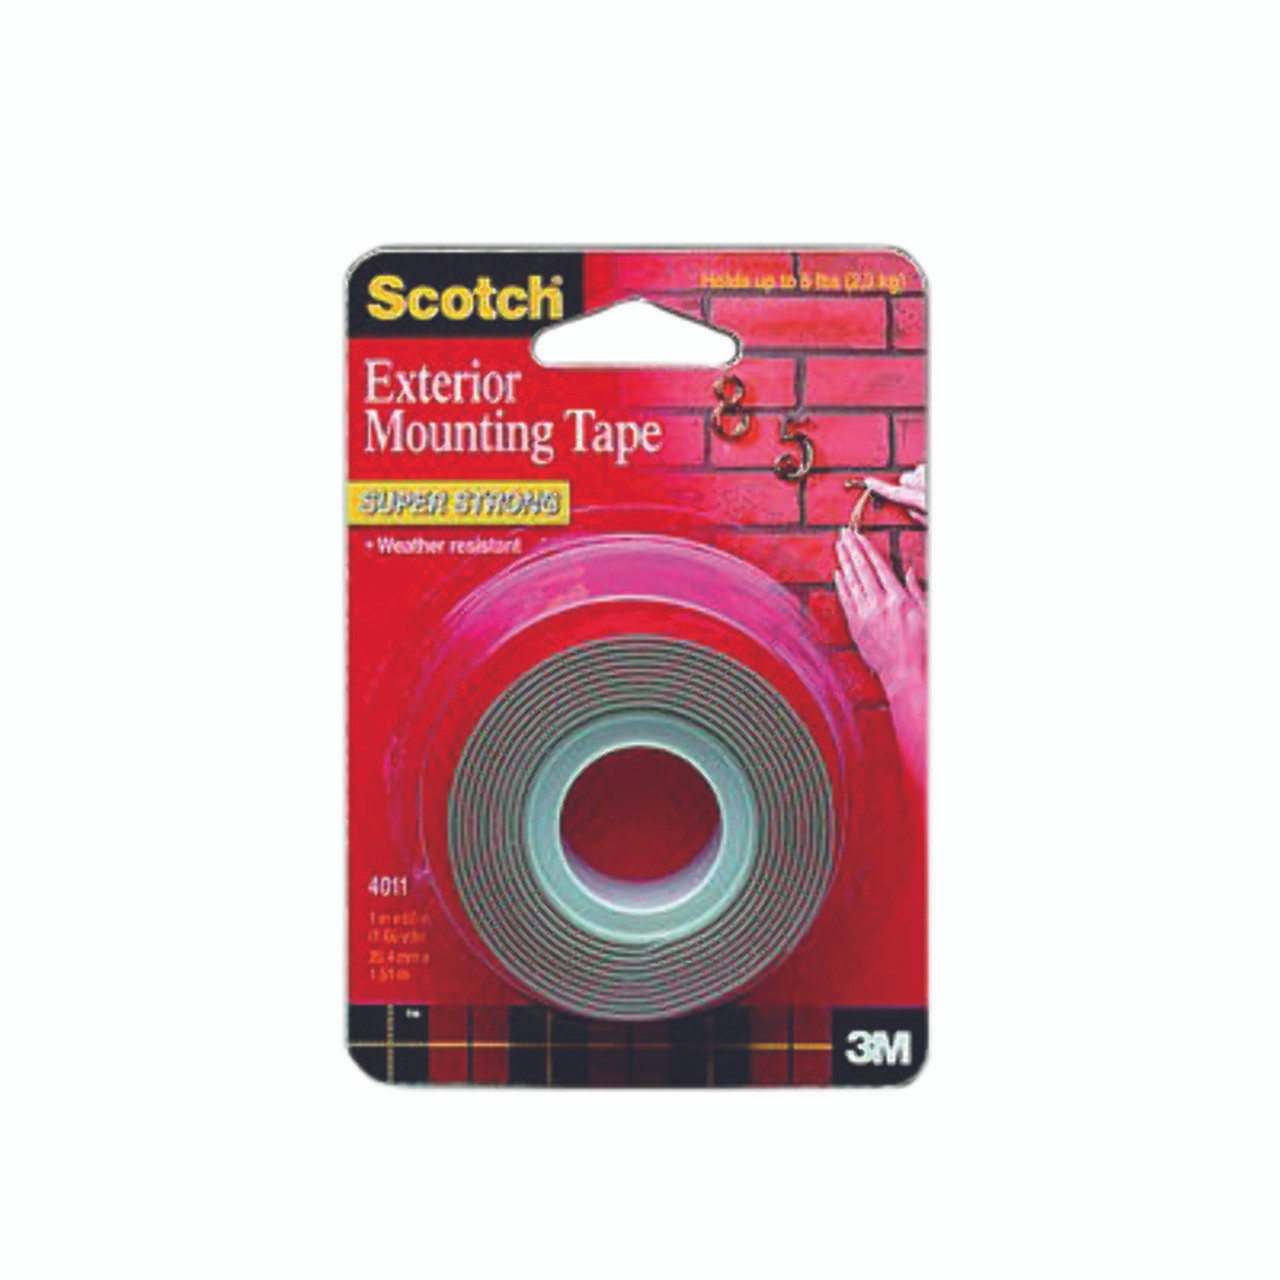 Tape 4011 Exterior Mounting 1x60in